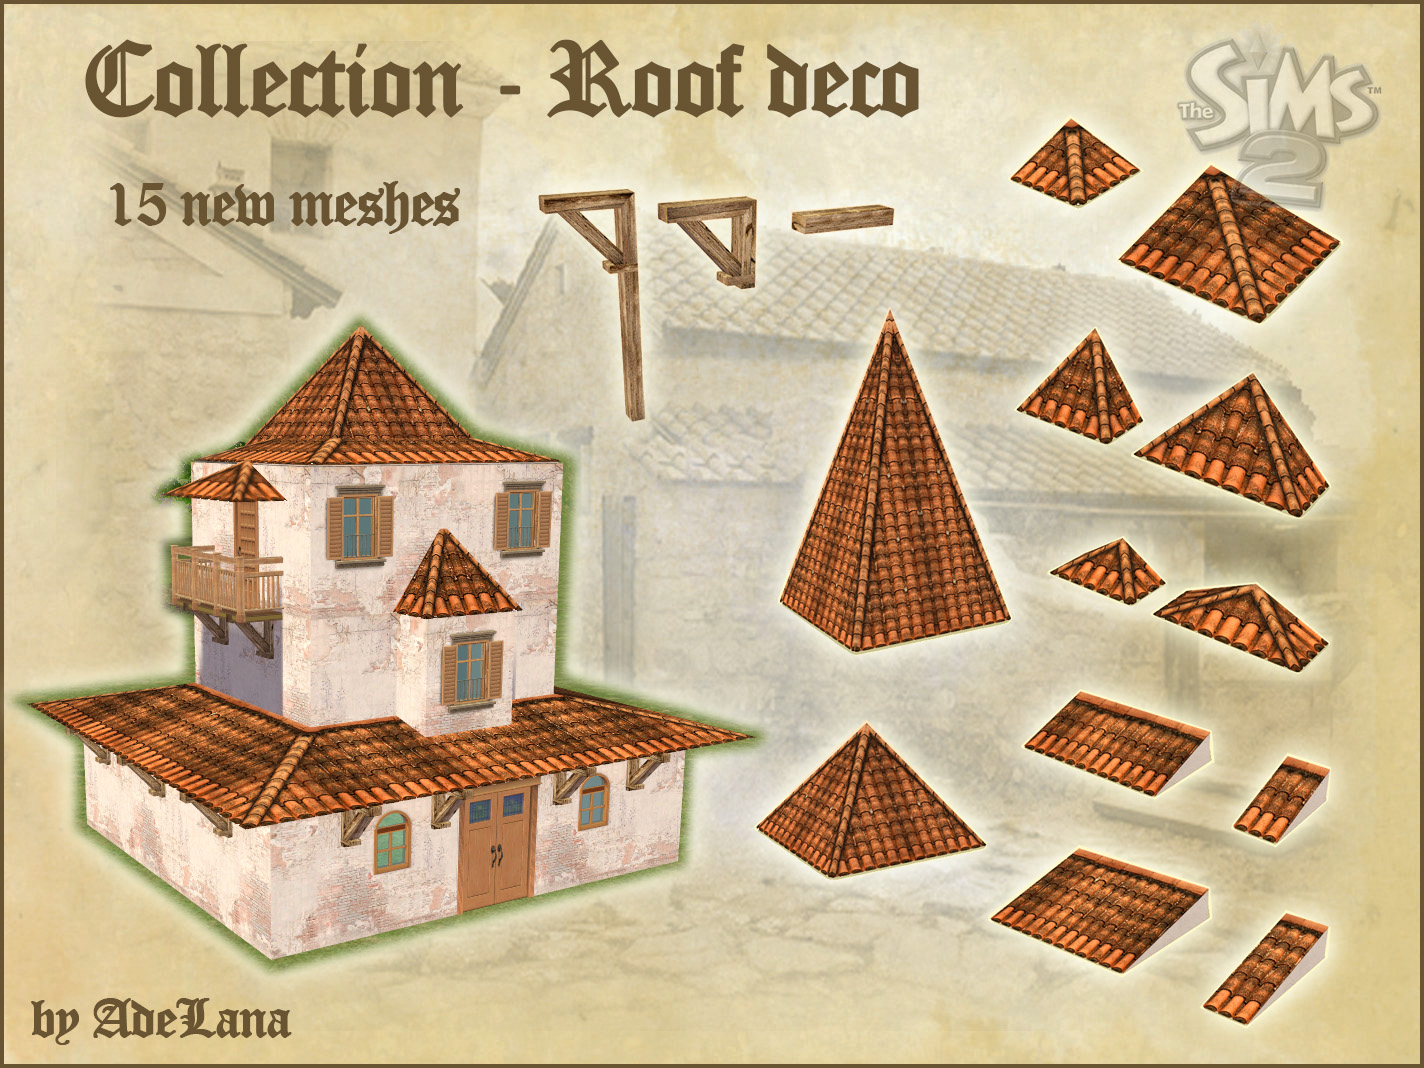 Mod The Sims Roof Decor Collection